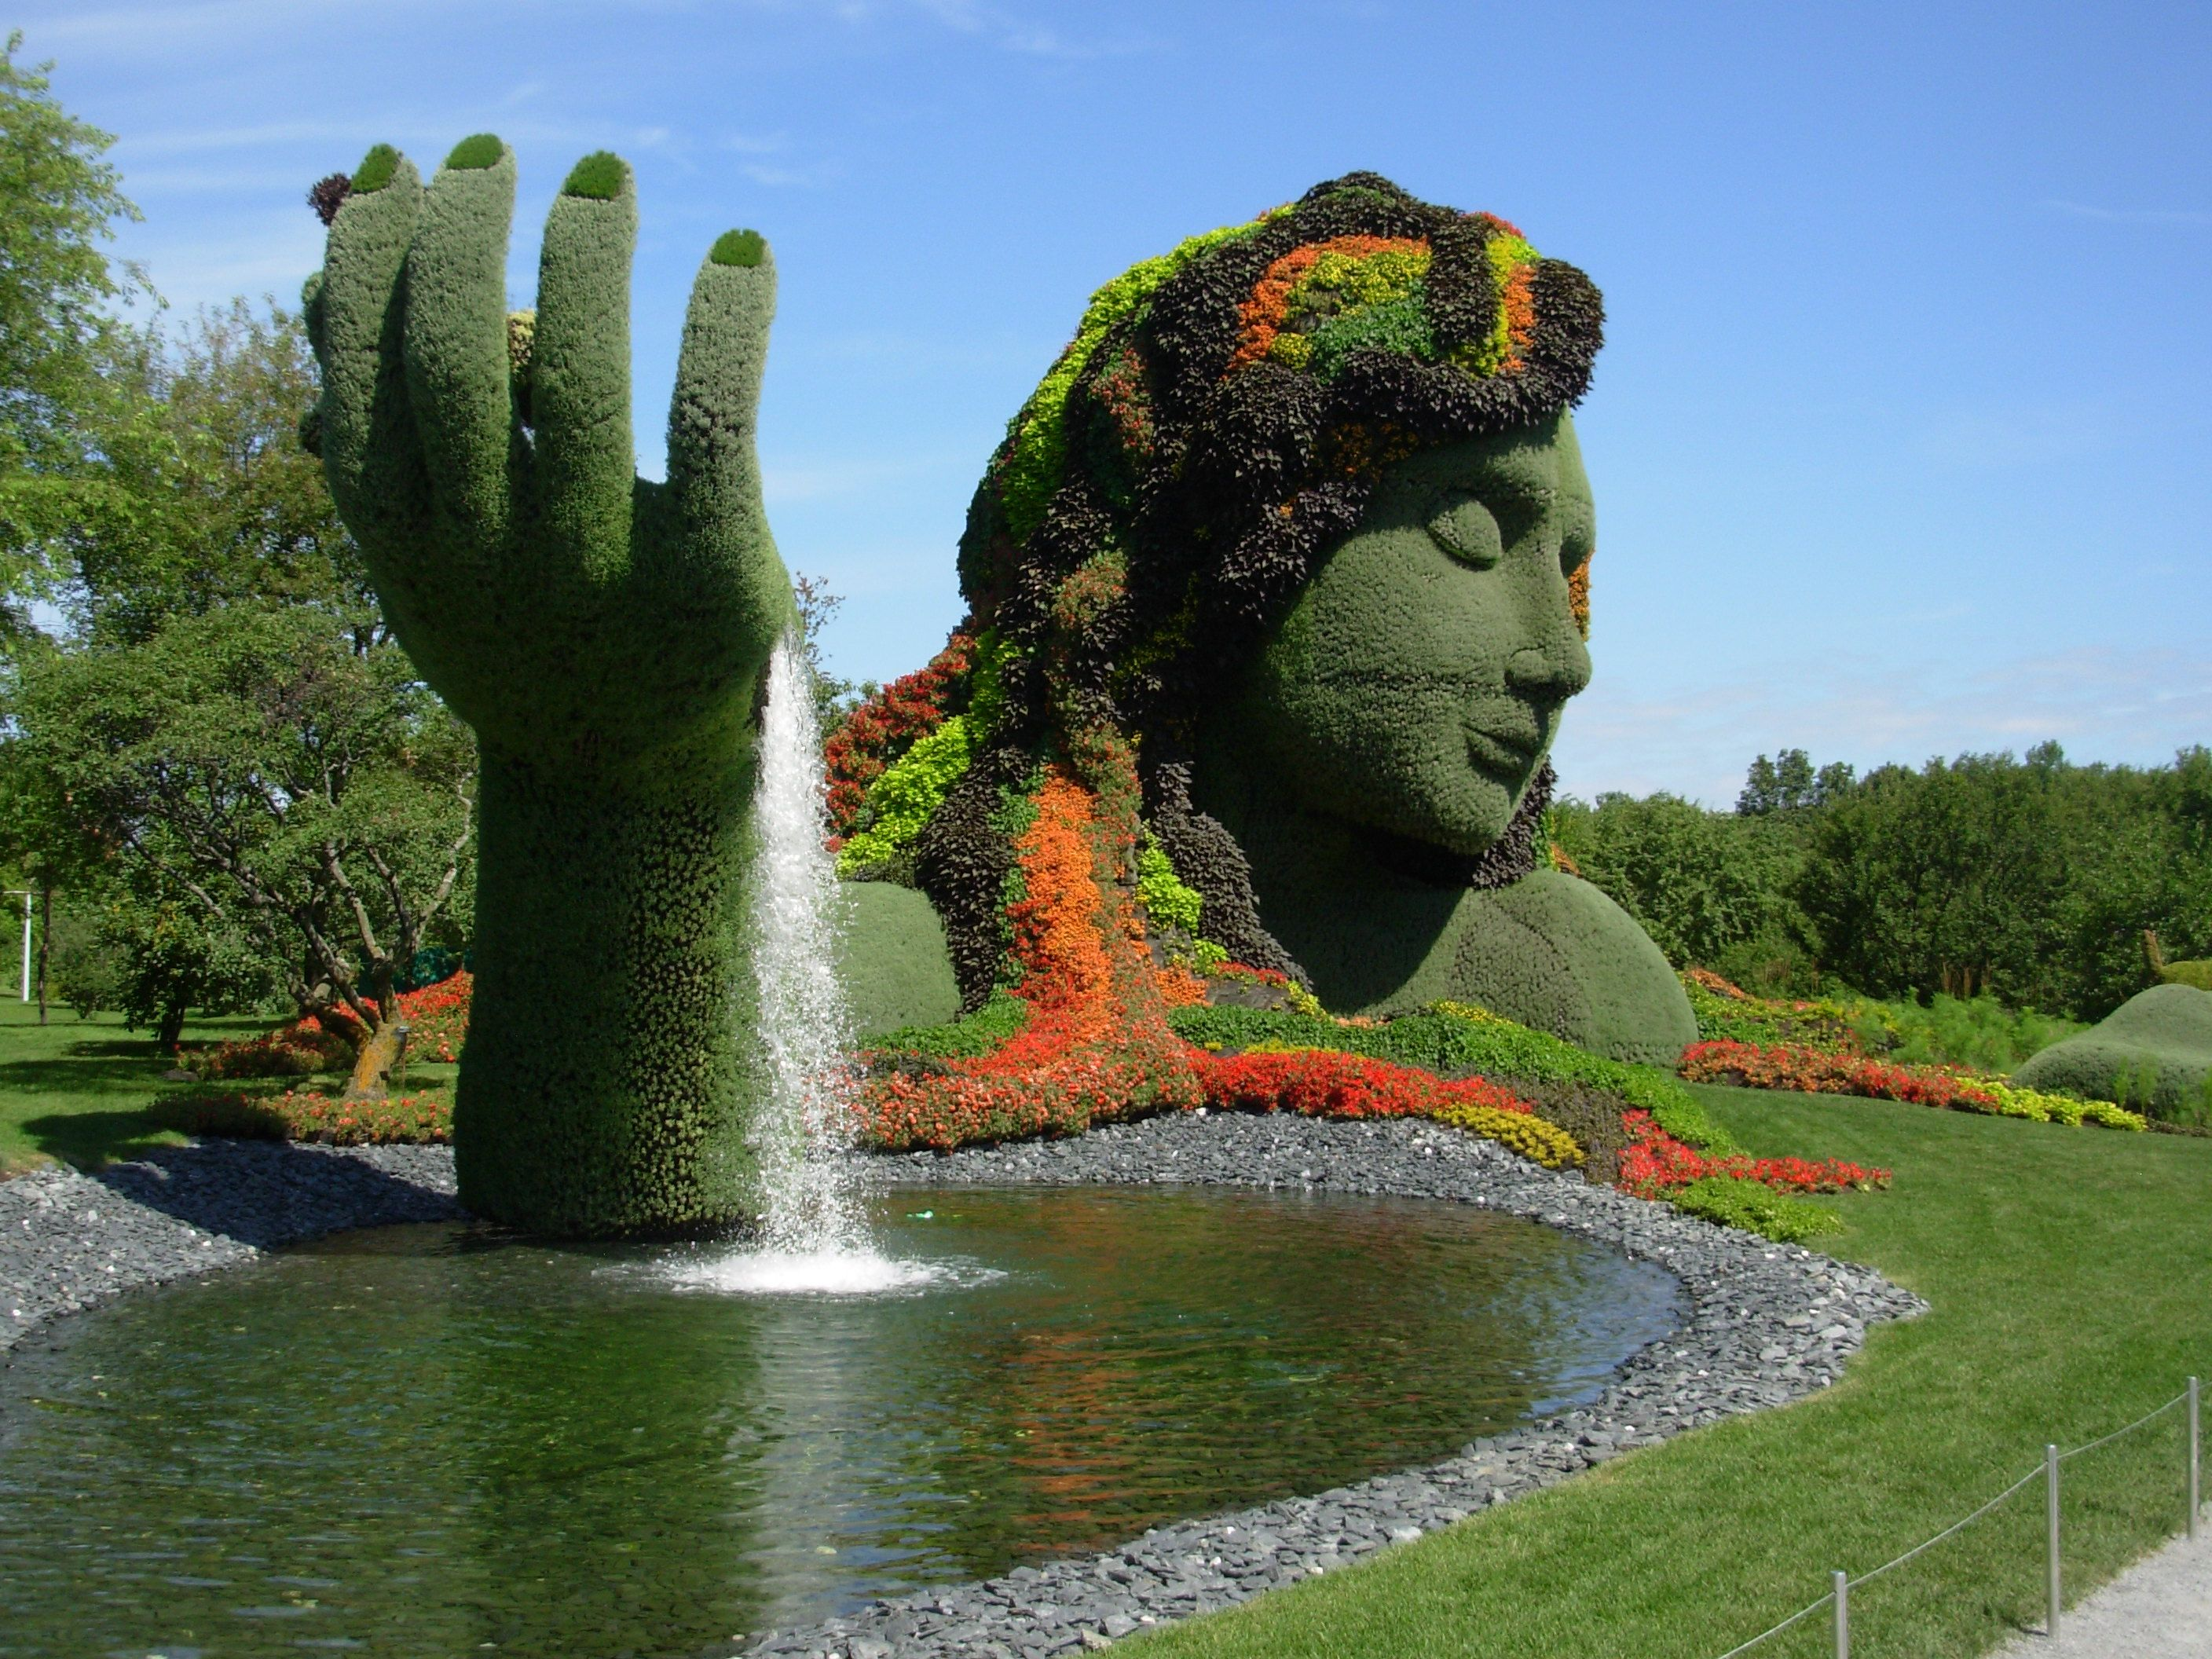 Not your average topiary mother earth at the montreal botanical not your average topiary mother earth at the montreal botanical gardens http publicscrutiny Image collections